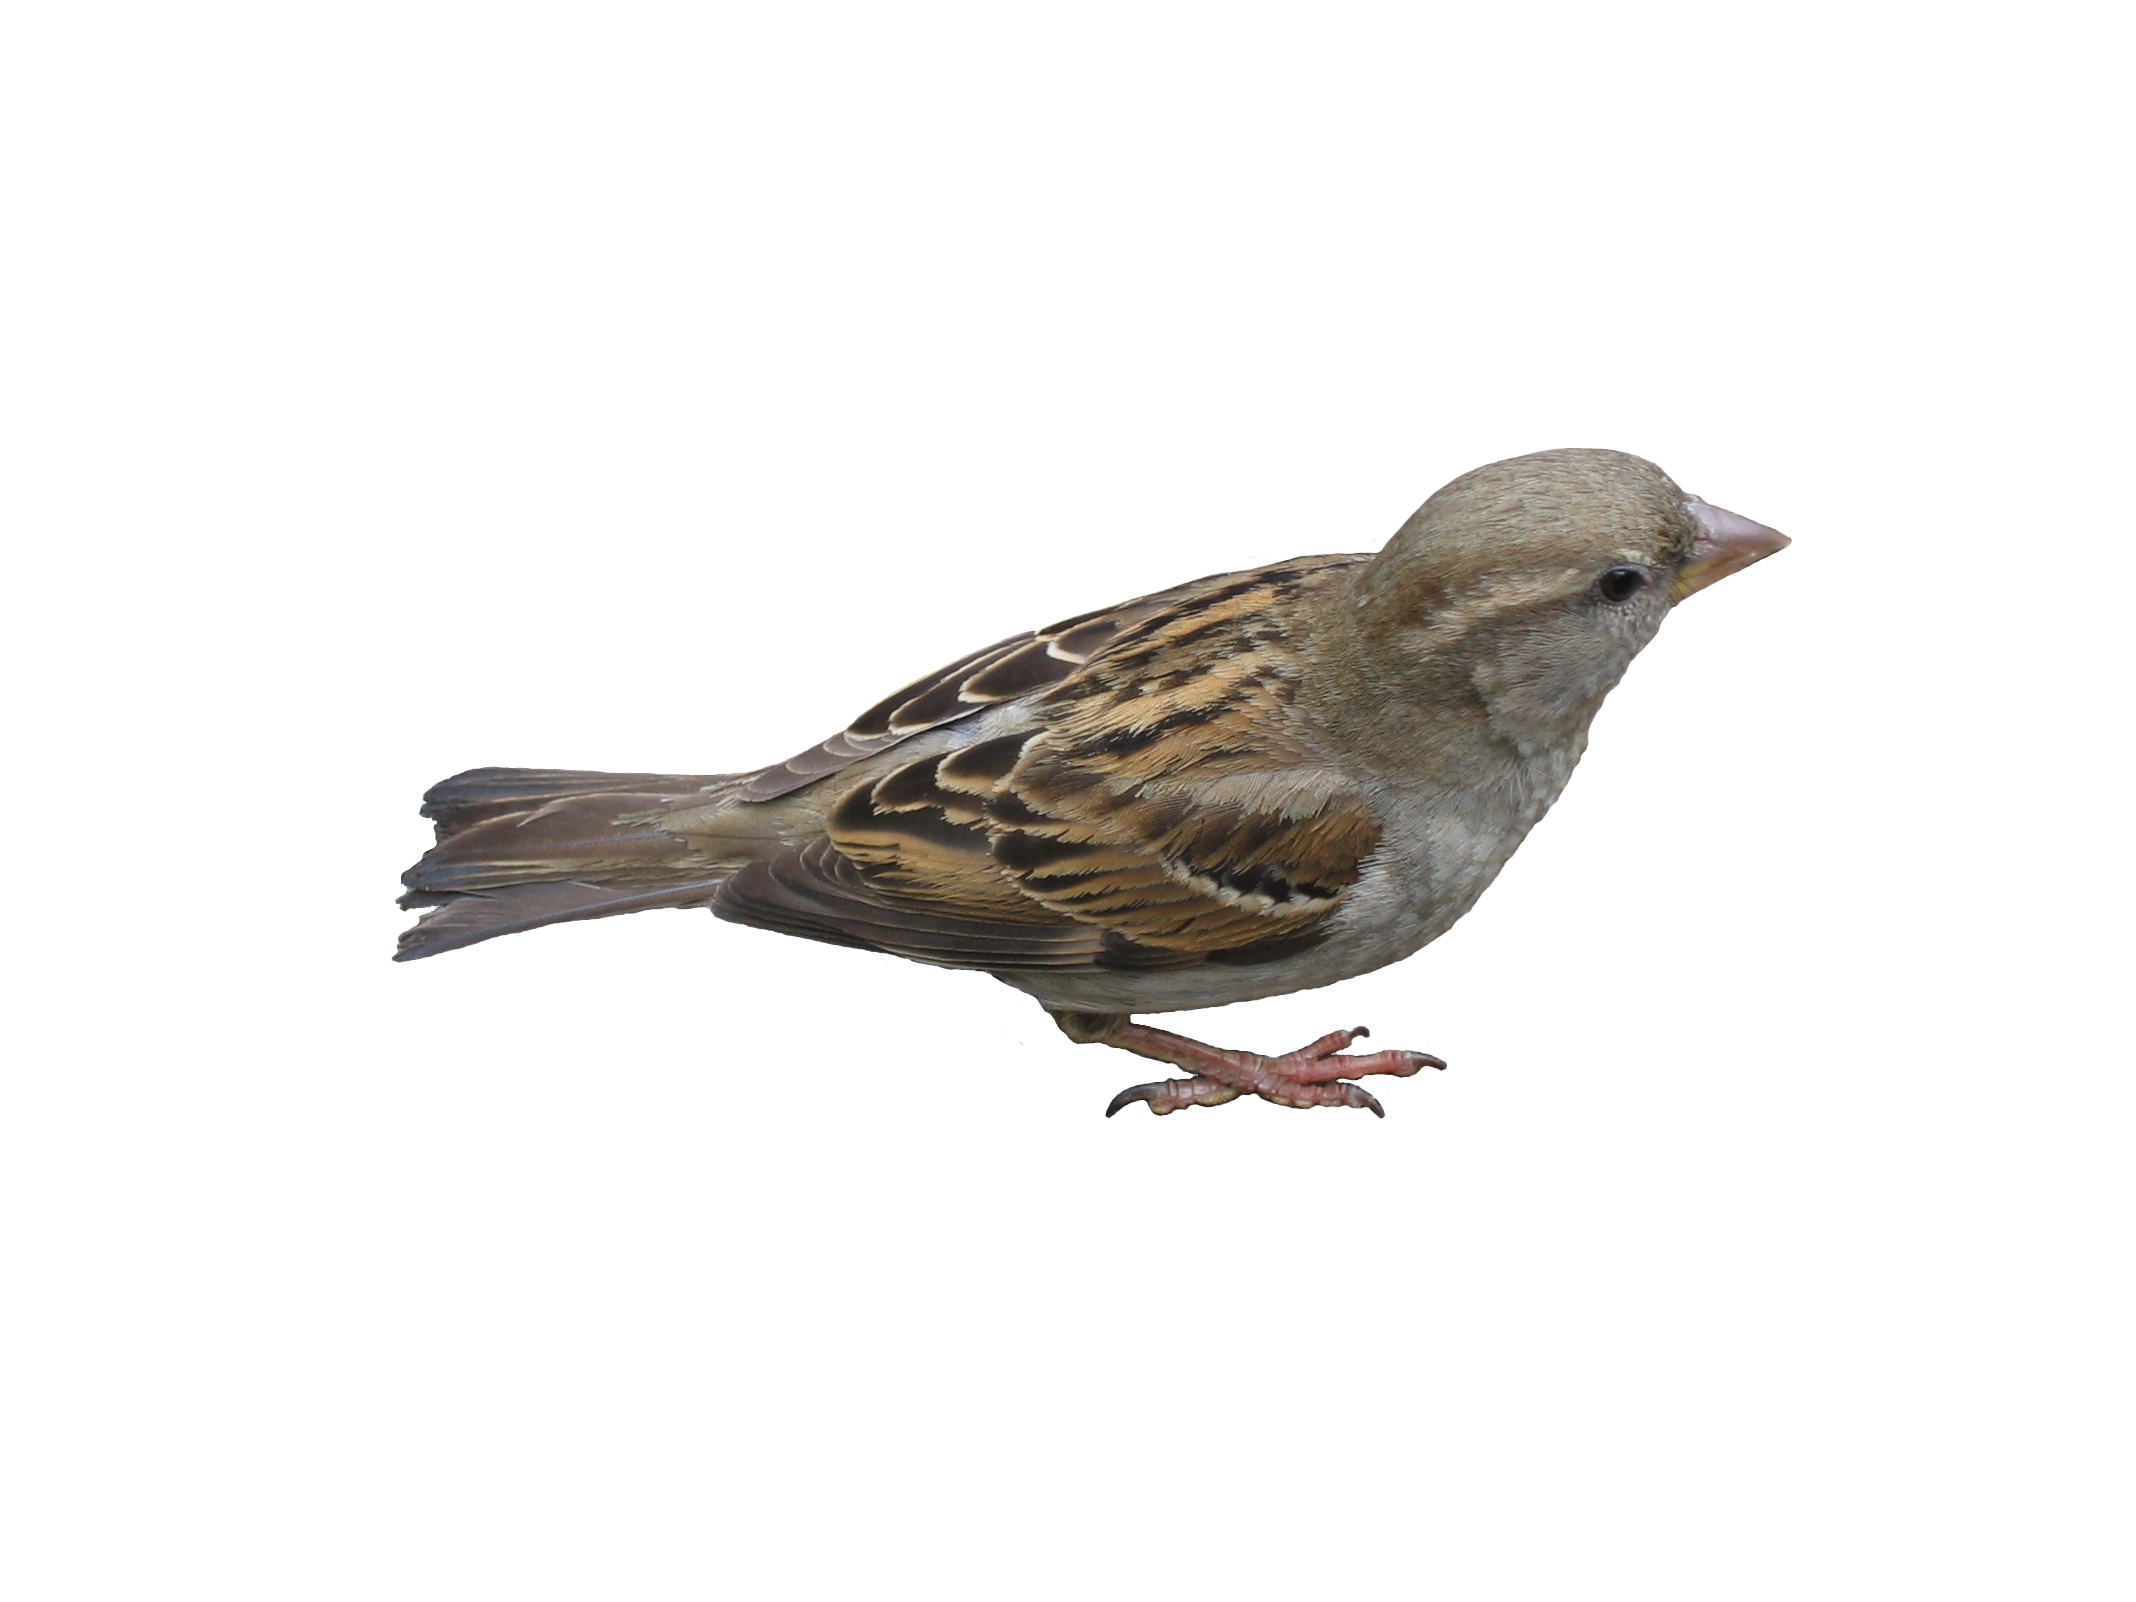 bigstock_An_Isolated_Sparrow_116770.jpg